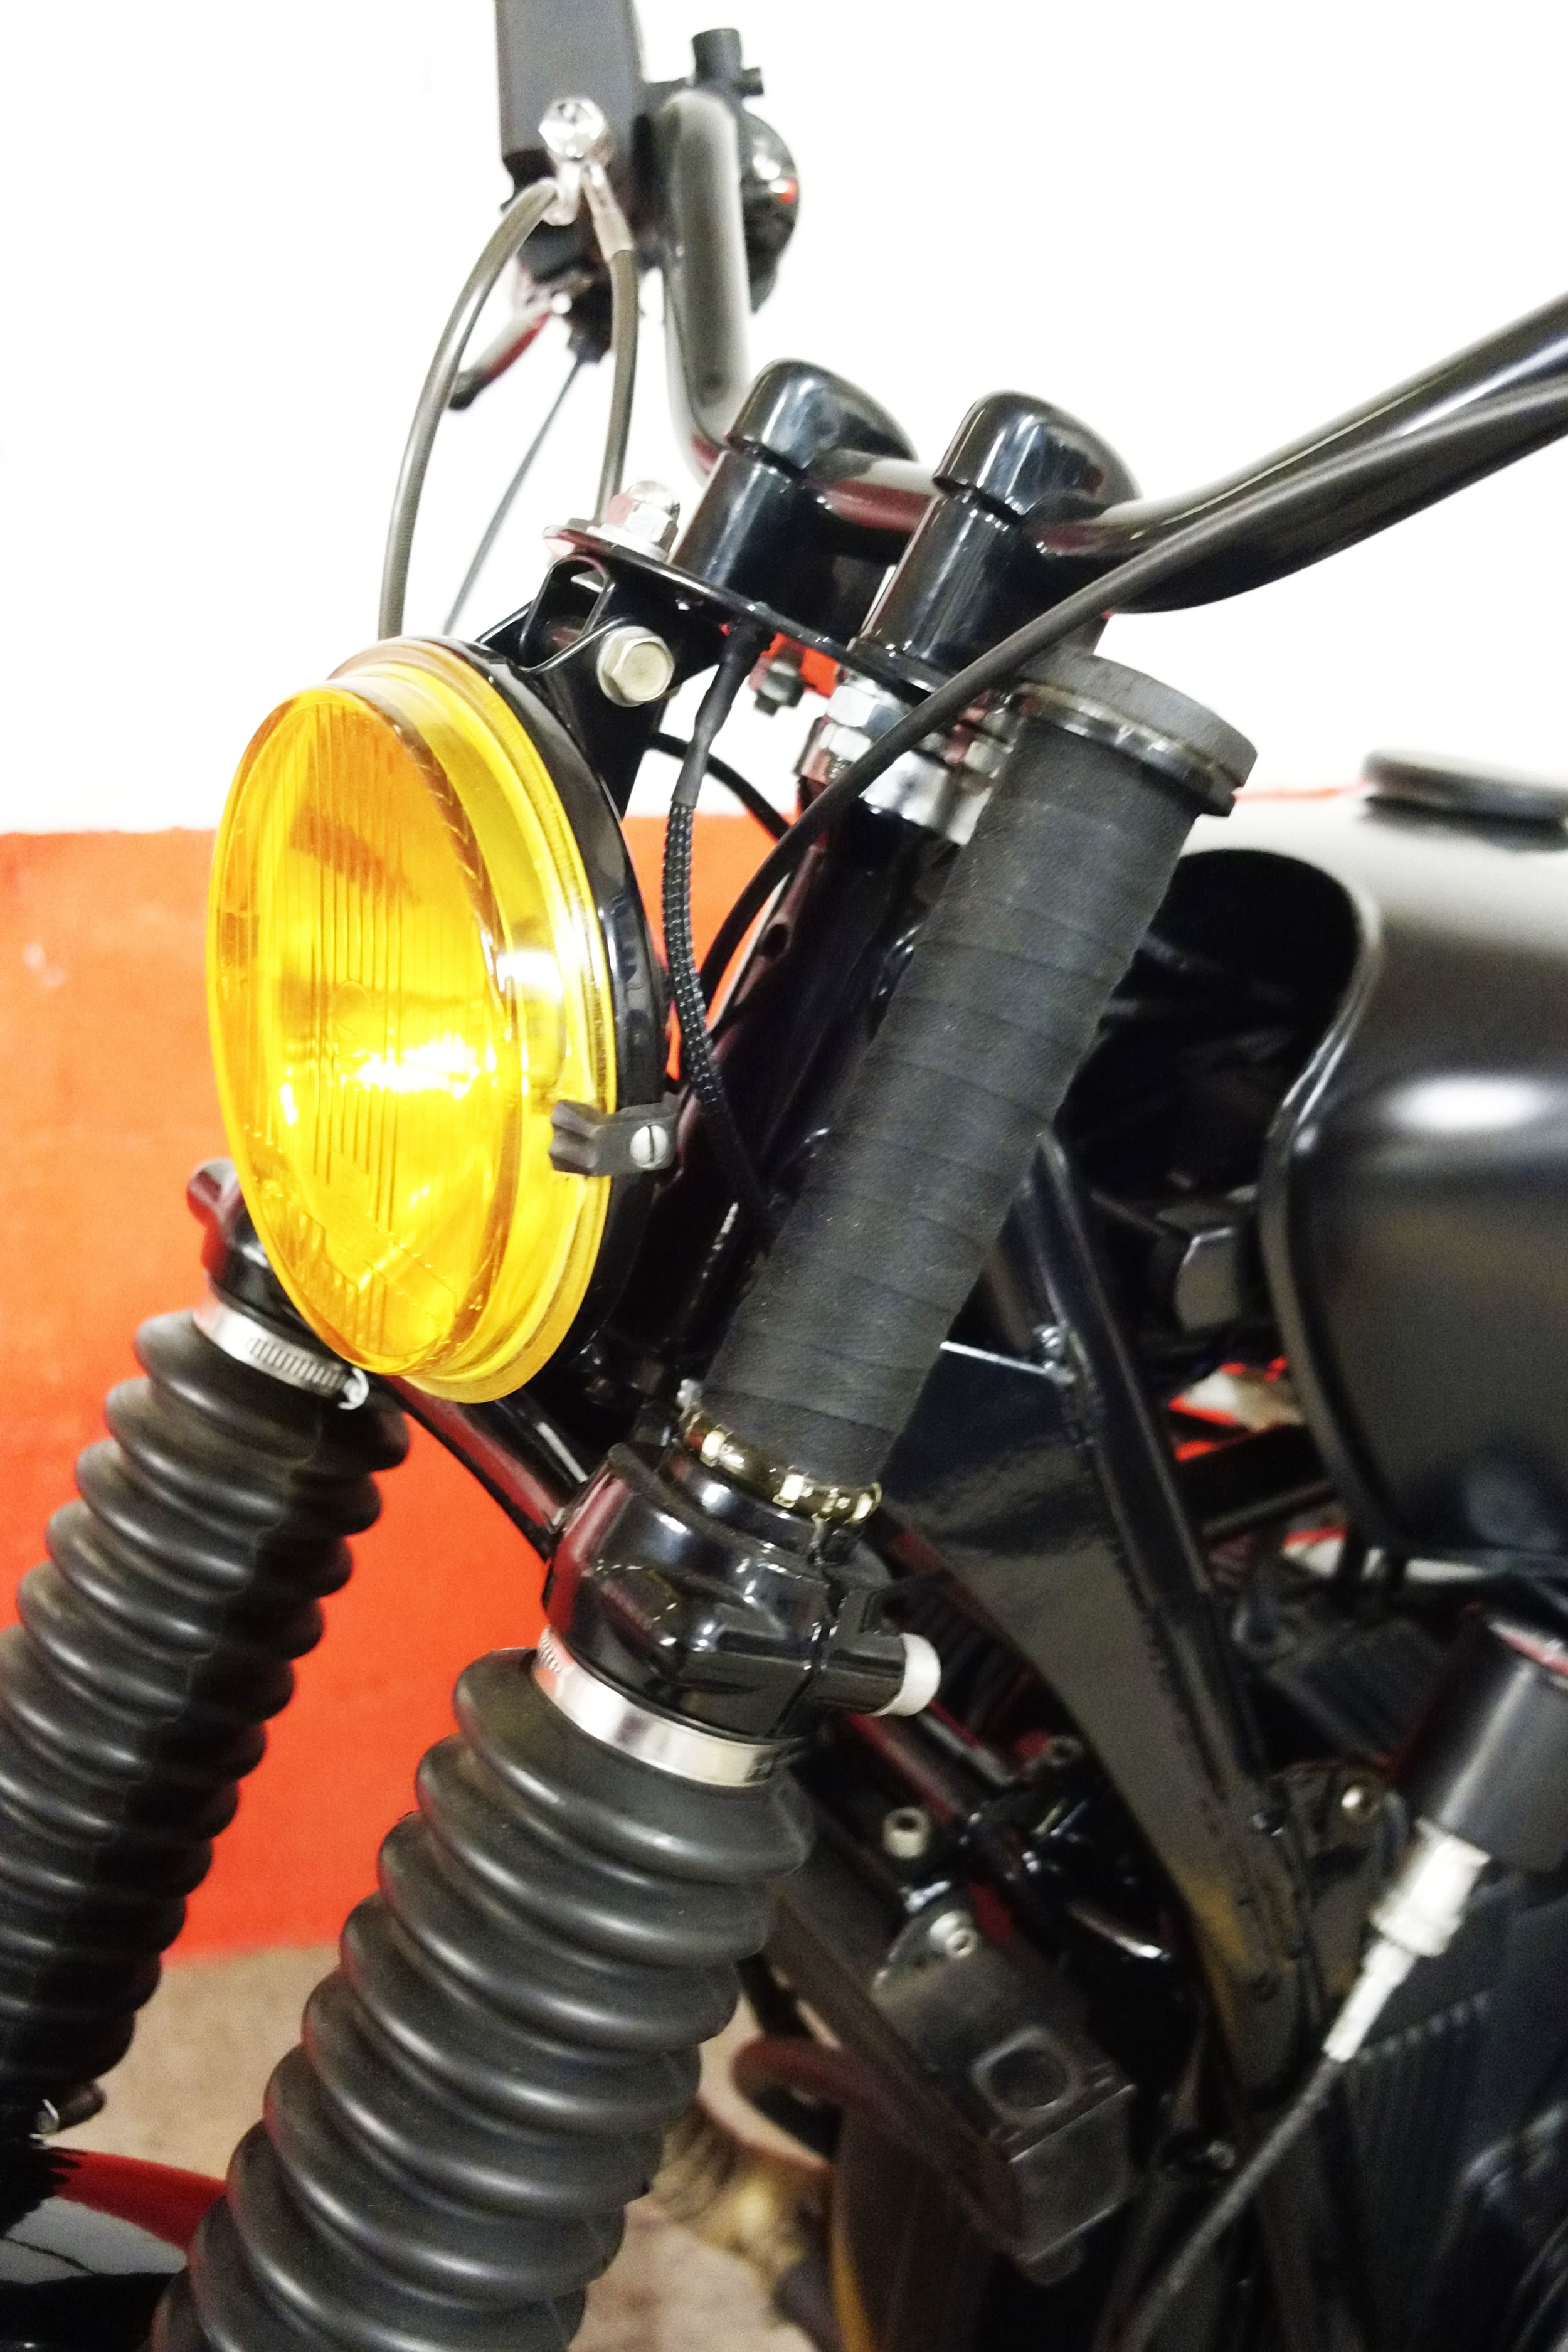 - shiny black powder coating of the frame + side stand + foot rests +fork legs + handlebar + triple tree + headlight;  - mini LED blinkers mounted around the fork tubes.